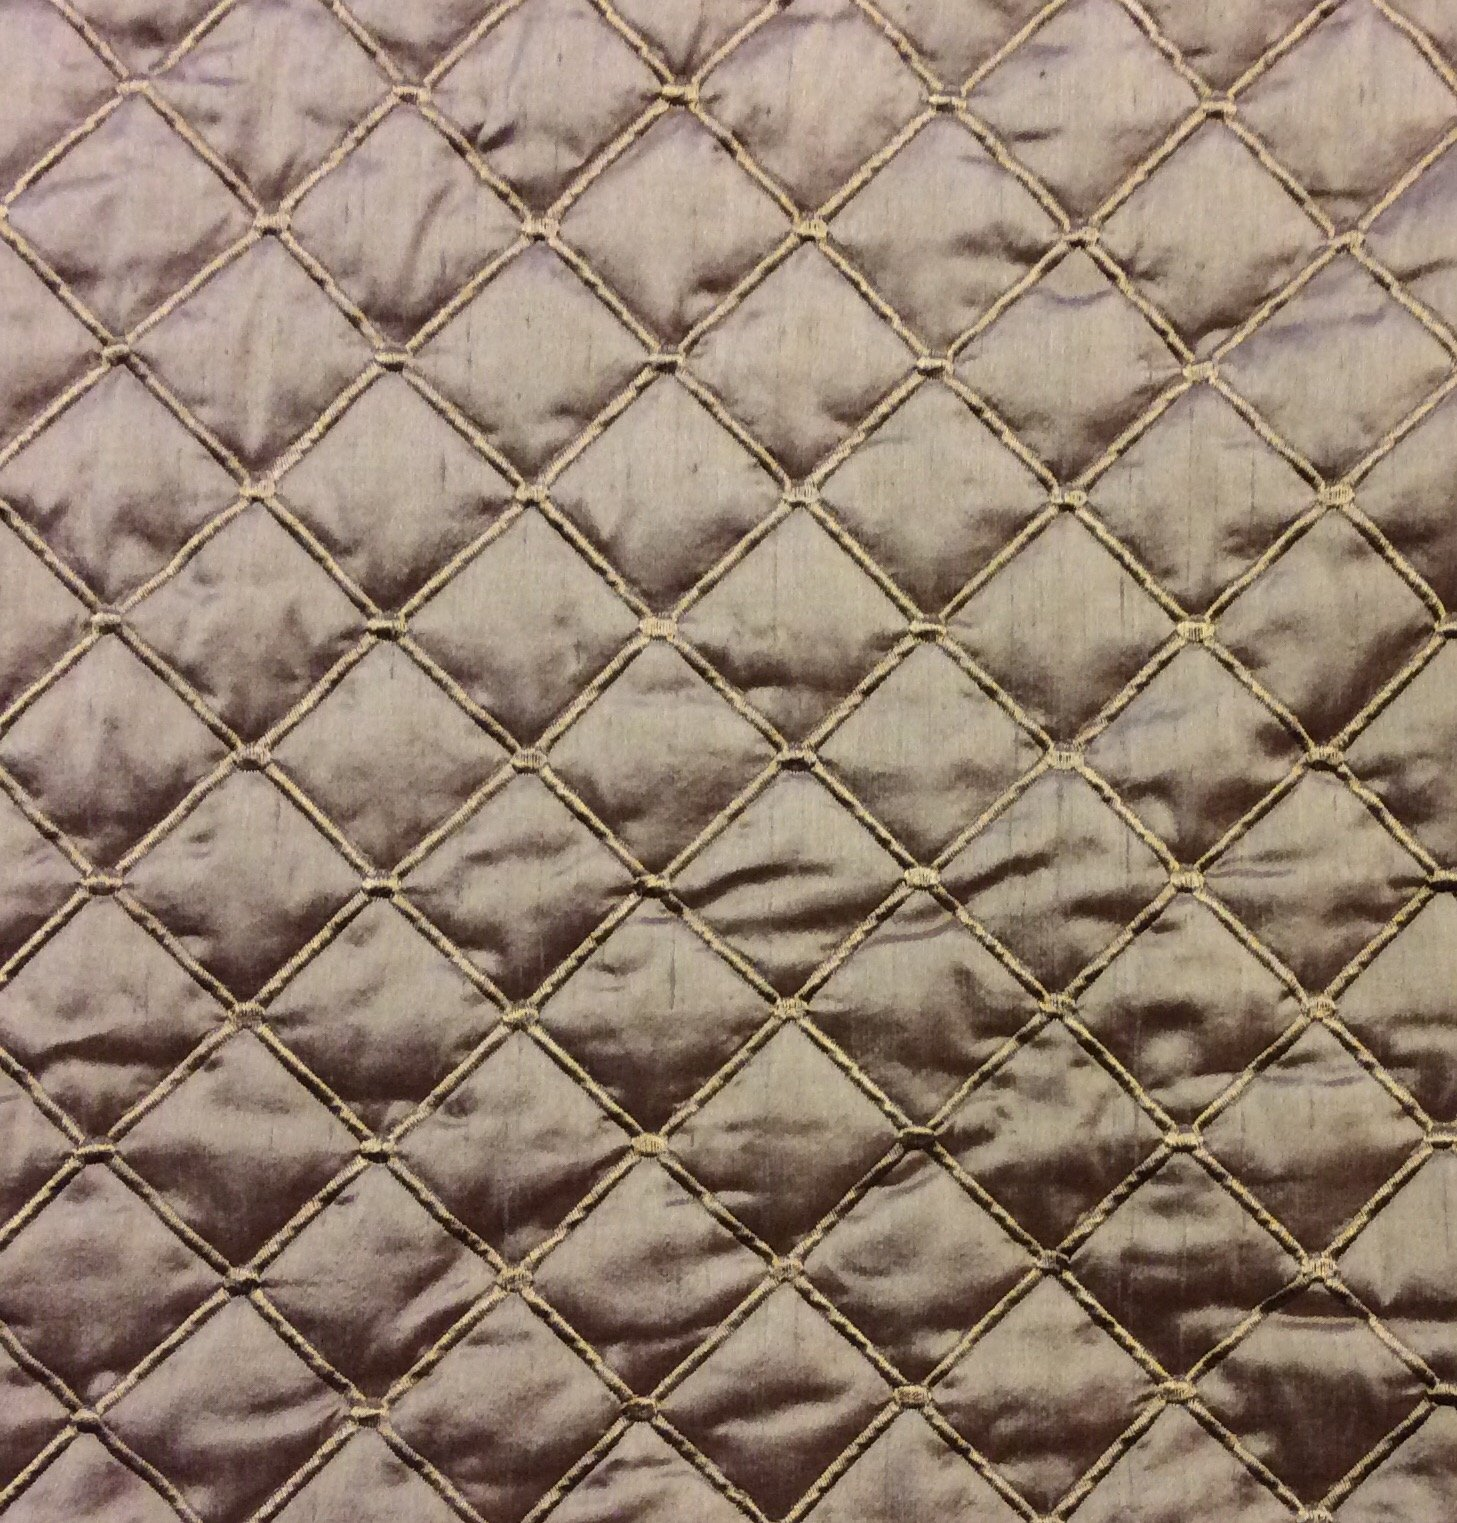 Silk Dupioni Light Olive Taupe Quilted and Embroidered High End Luxury Home Decor Upholstery Bedding Fabric HD57